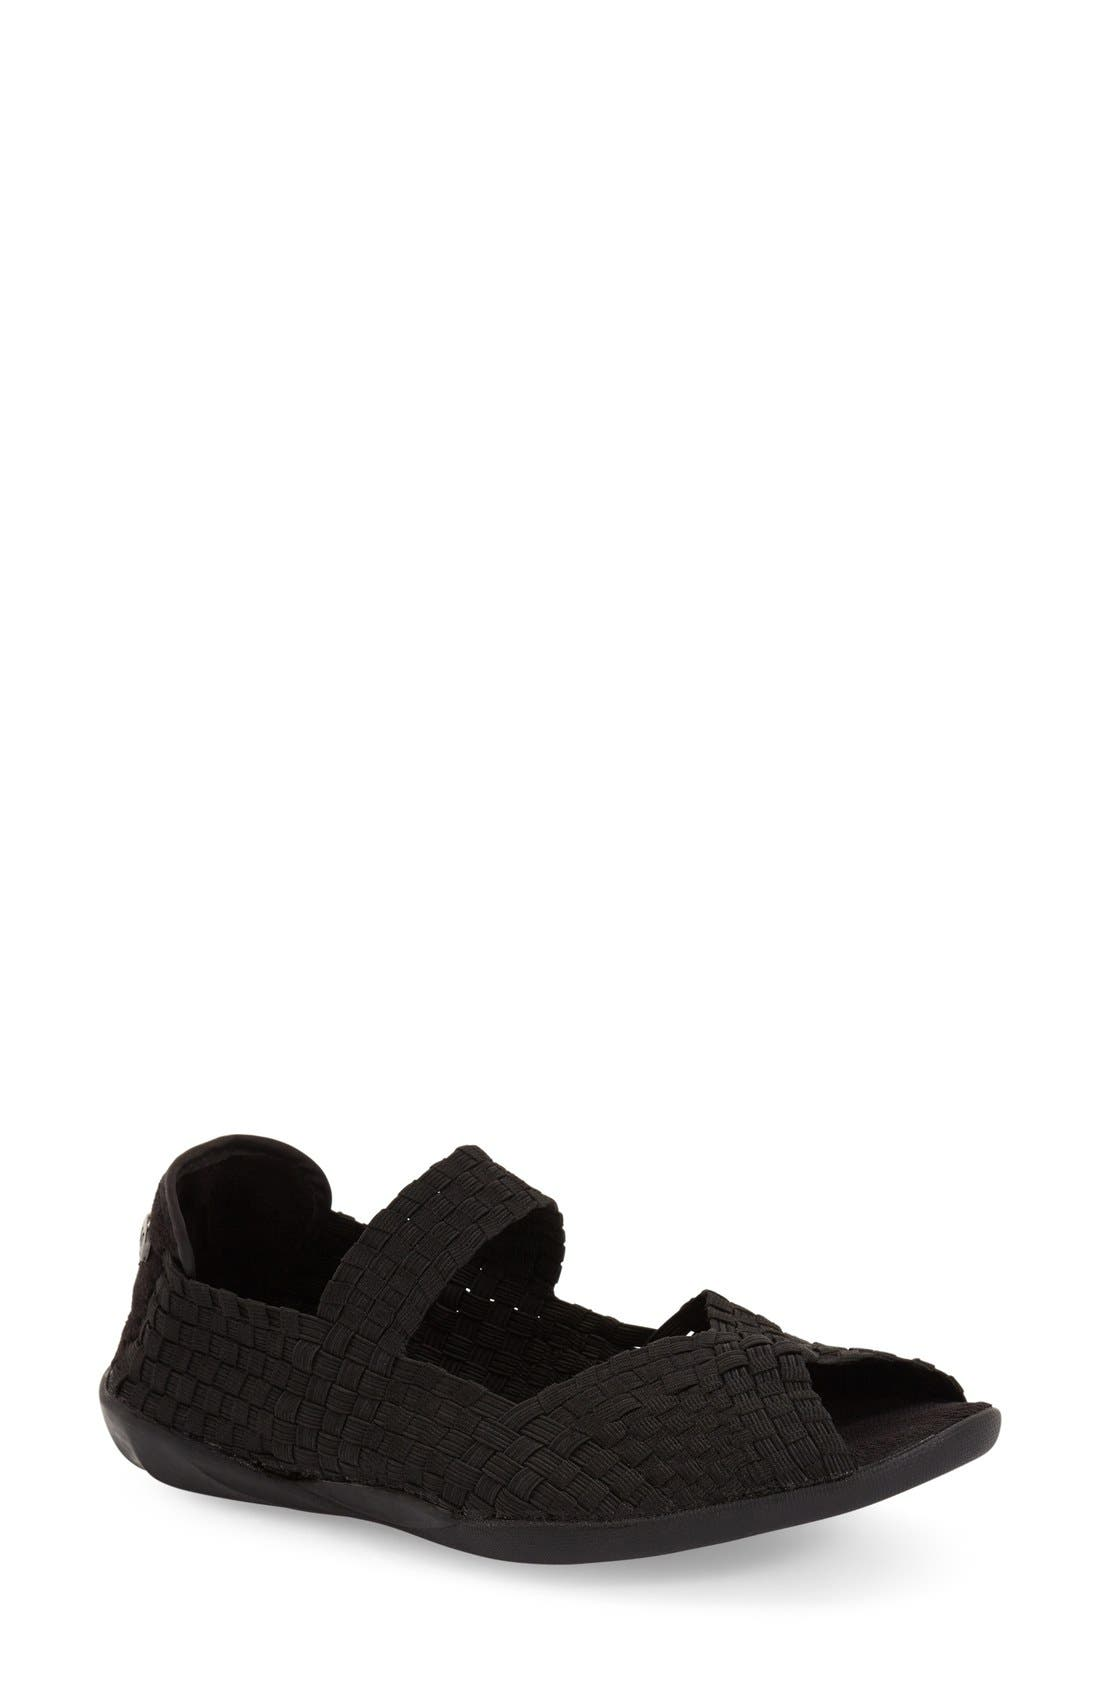 'Chick' Mary Jane Sandal,                         Main,                         color,